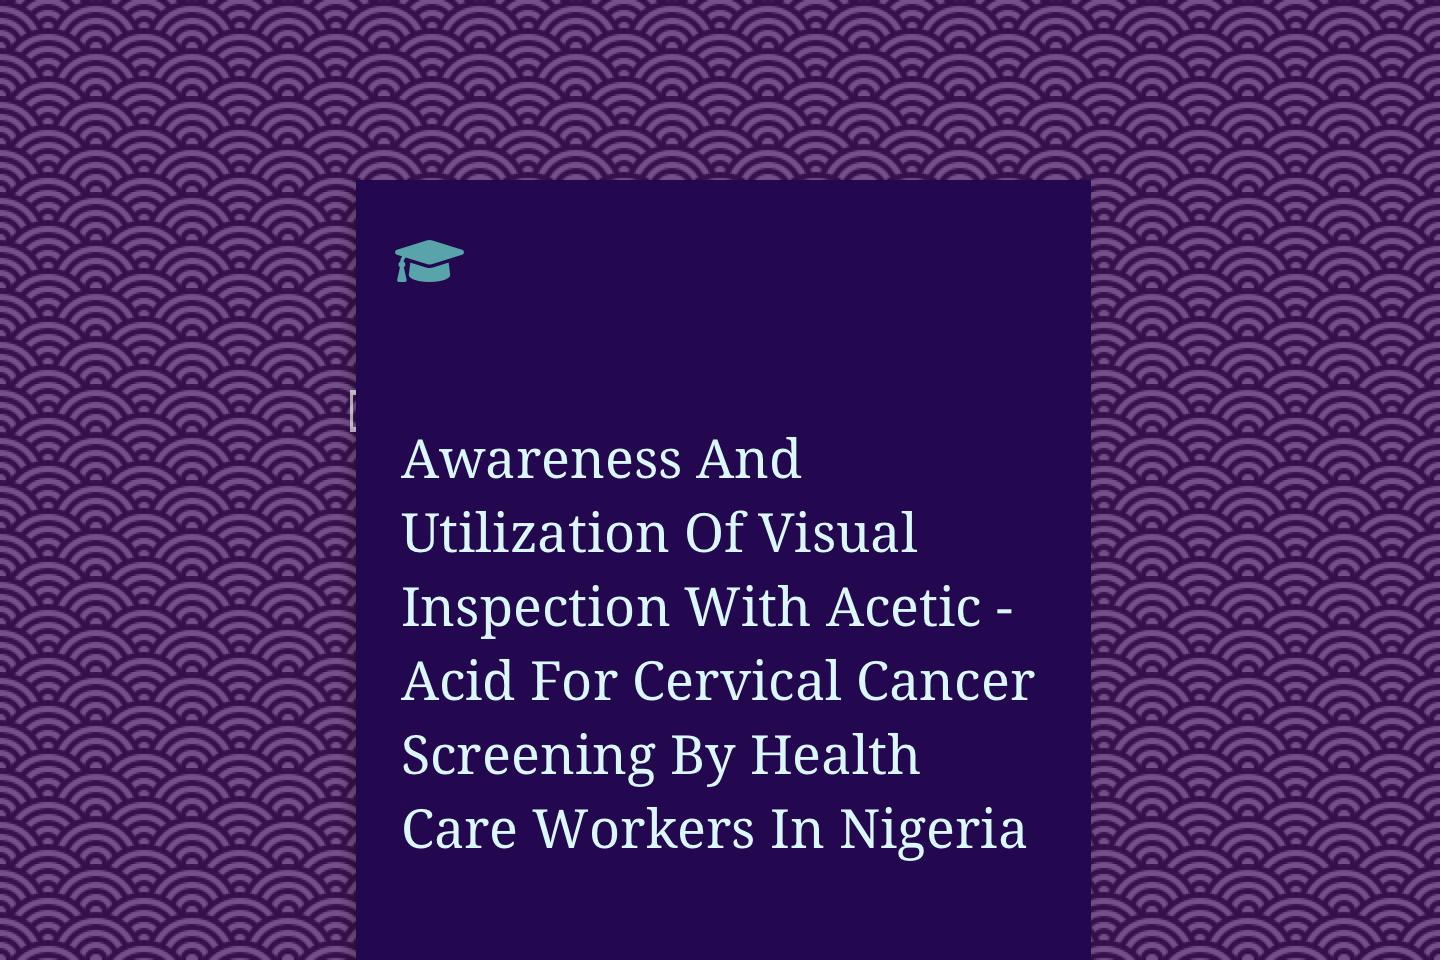 Awareness And Utilization Of Visual Inspection With Acetic - Acid For Cervical Cancer Screening By Health Care Workers In Nigeria